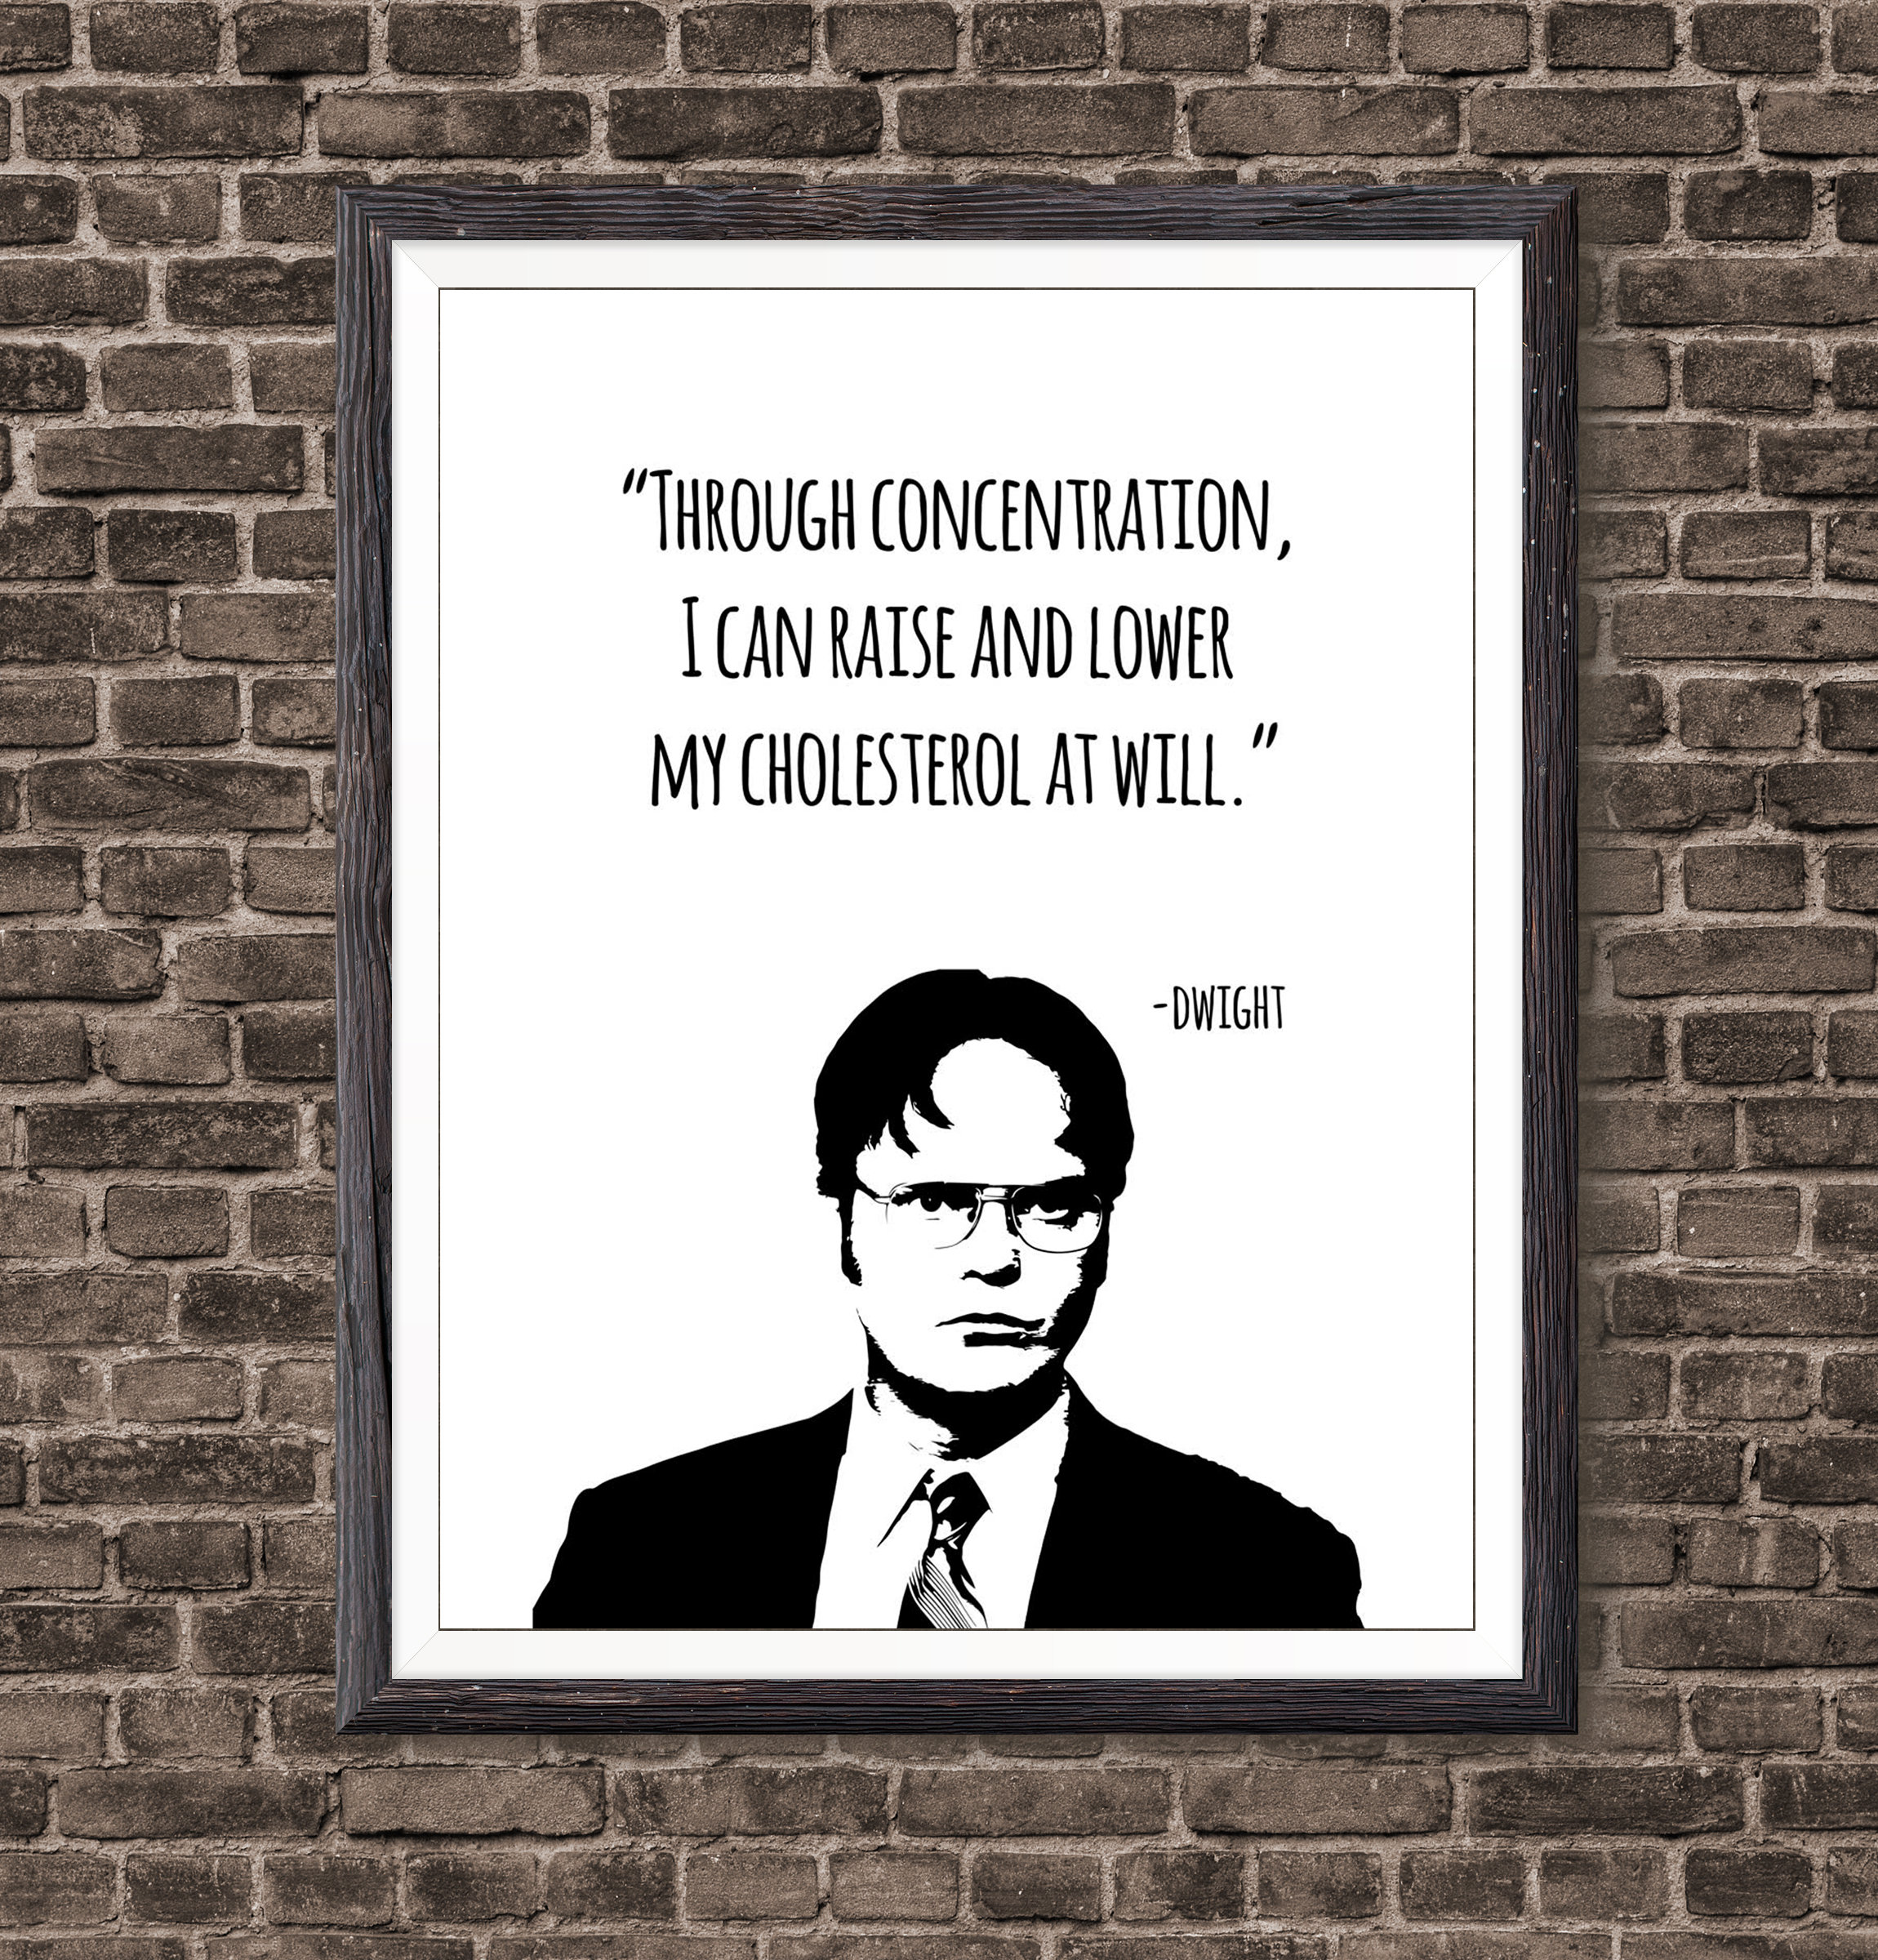 Dwight Schrute Quotes Life Art Print From The Office Tv ...